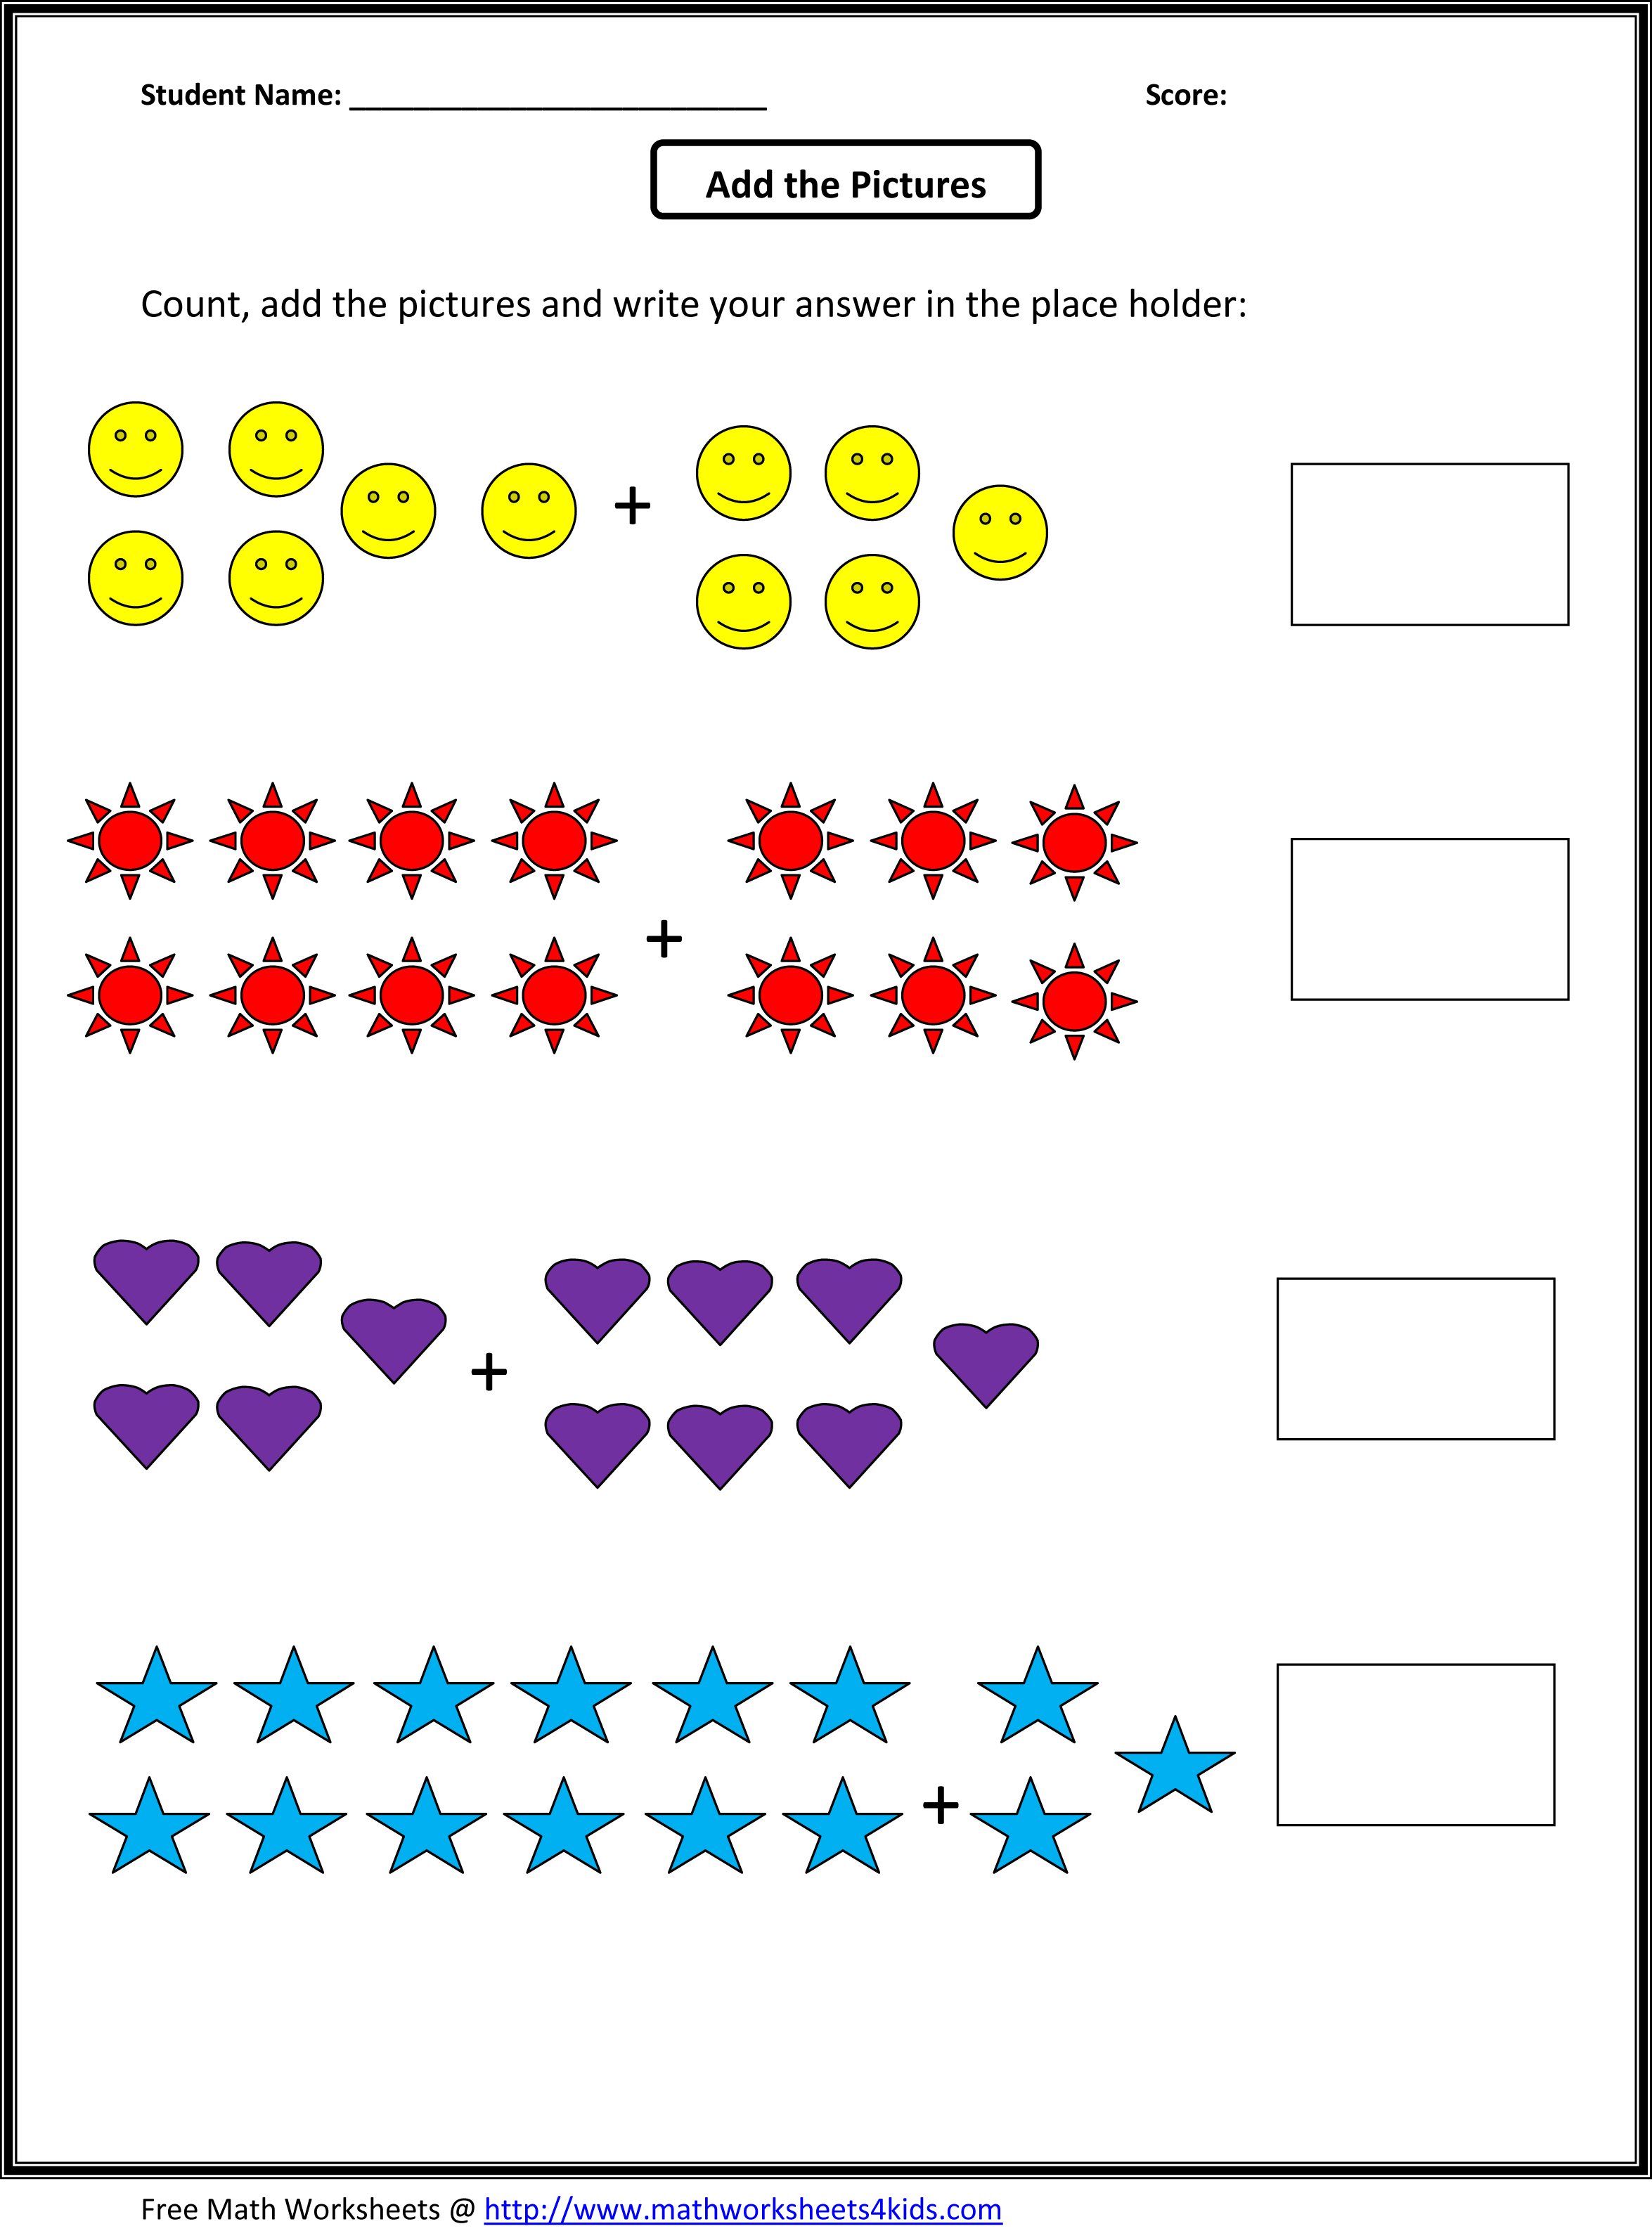 Weirdmailus  Terrific Grade  Maths Worksheet  Reocurent With Engaging Math Worksheets For St Grade Free  Reocurent With Astounding Surface Area Of Cone Worksheet Also Word Problem Worksheets Th Grade In Addition Fun Subtraction With Regrouping Worksheets And Drawing Conclusions Worksheets St Grade As Well As Simple Stoichiometry Worksheet Additionally Character Building Worksheet From Reocurentcom With Weirdmailus  Engaging Grade  Maths Worksheet  Reocurent With Astounding Math Worksheets For St Grade Free  Reocurent And Terrific Surface Area Of Cone Worksheet Also Word Problem Worksheets Th Grade In Addition Fun Subtraction With Regrouping Worksheets From Reocurentcom